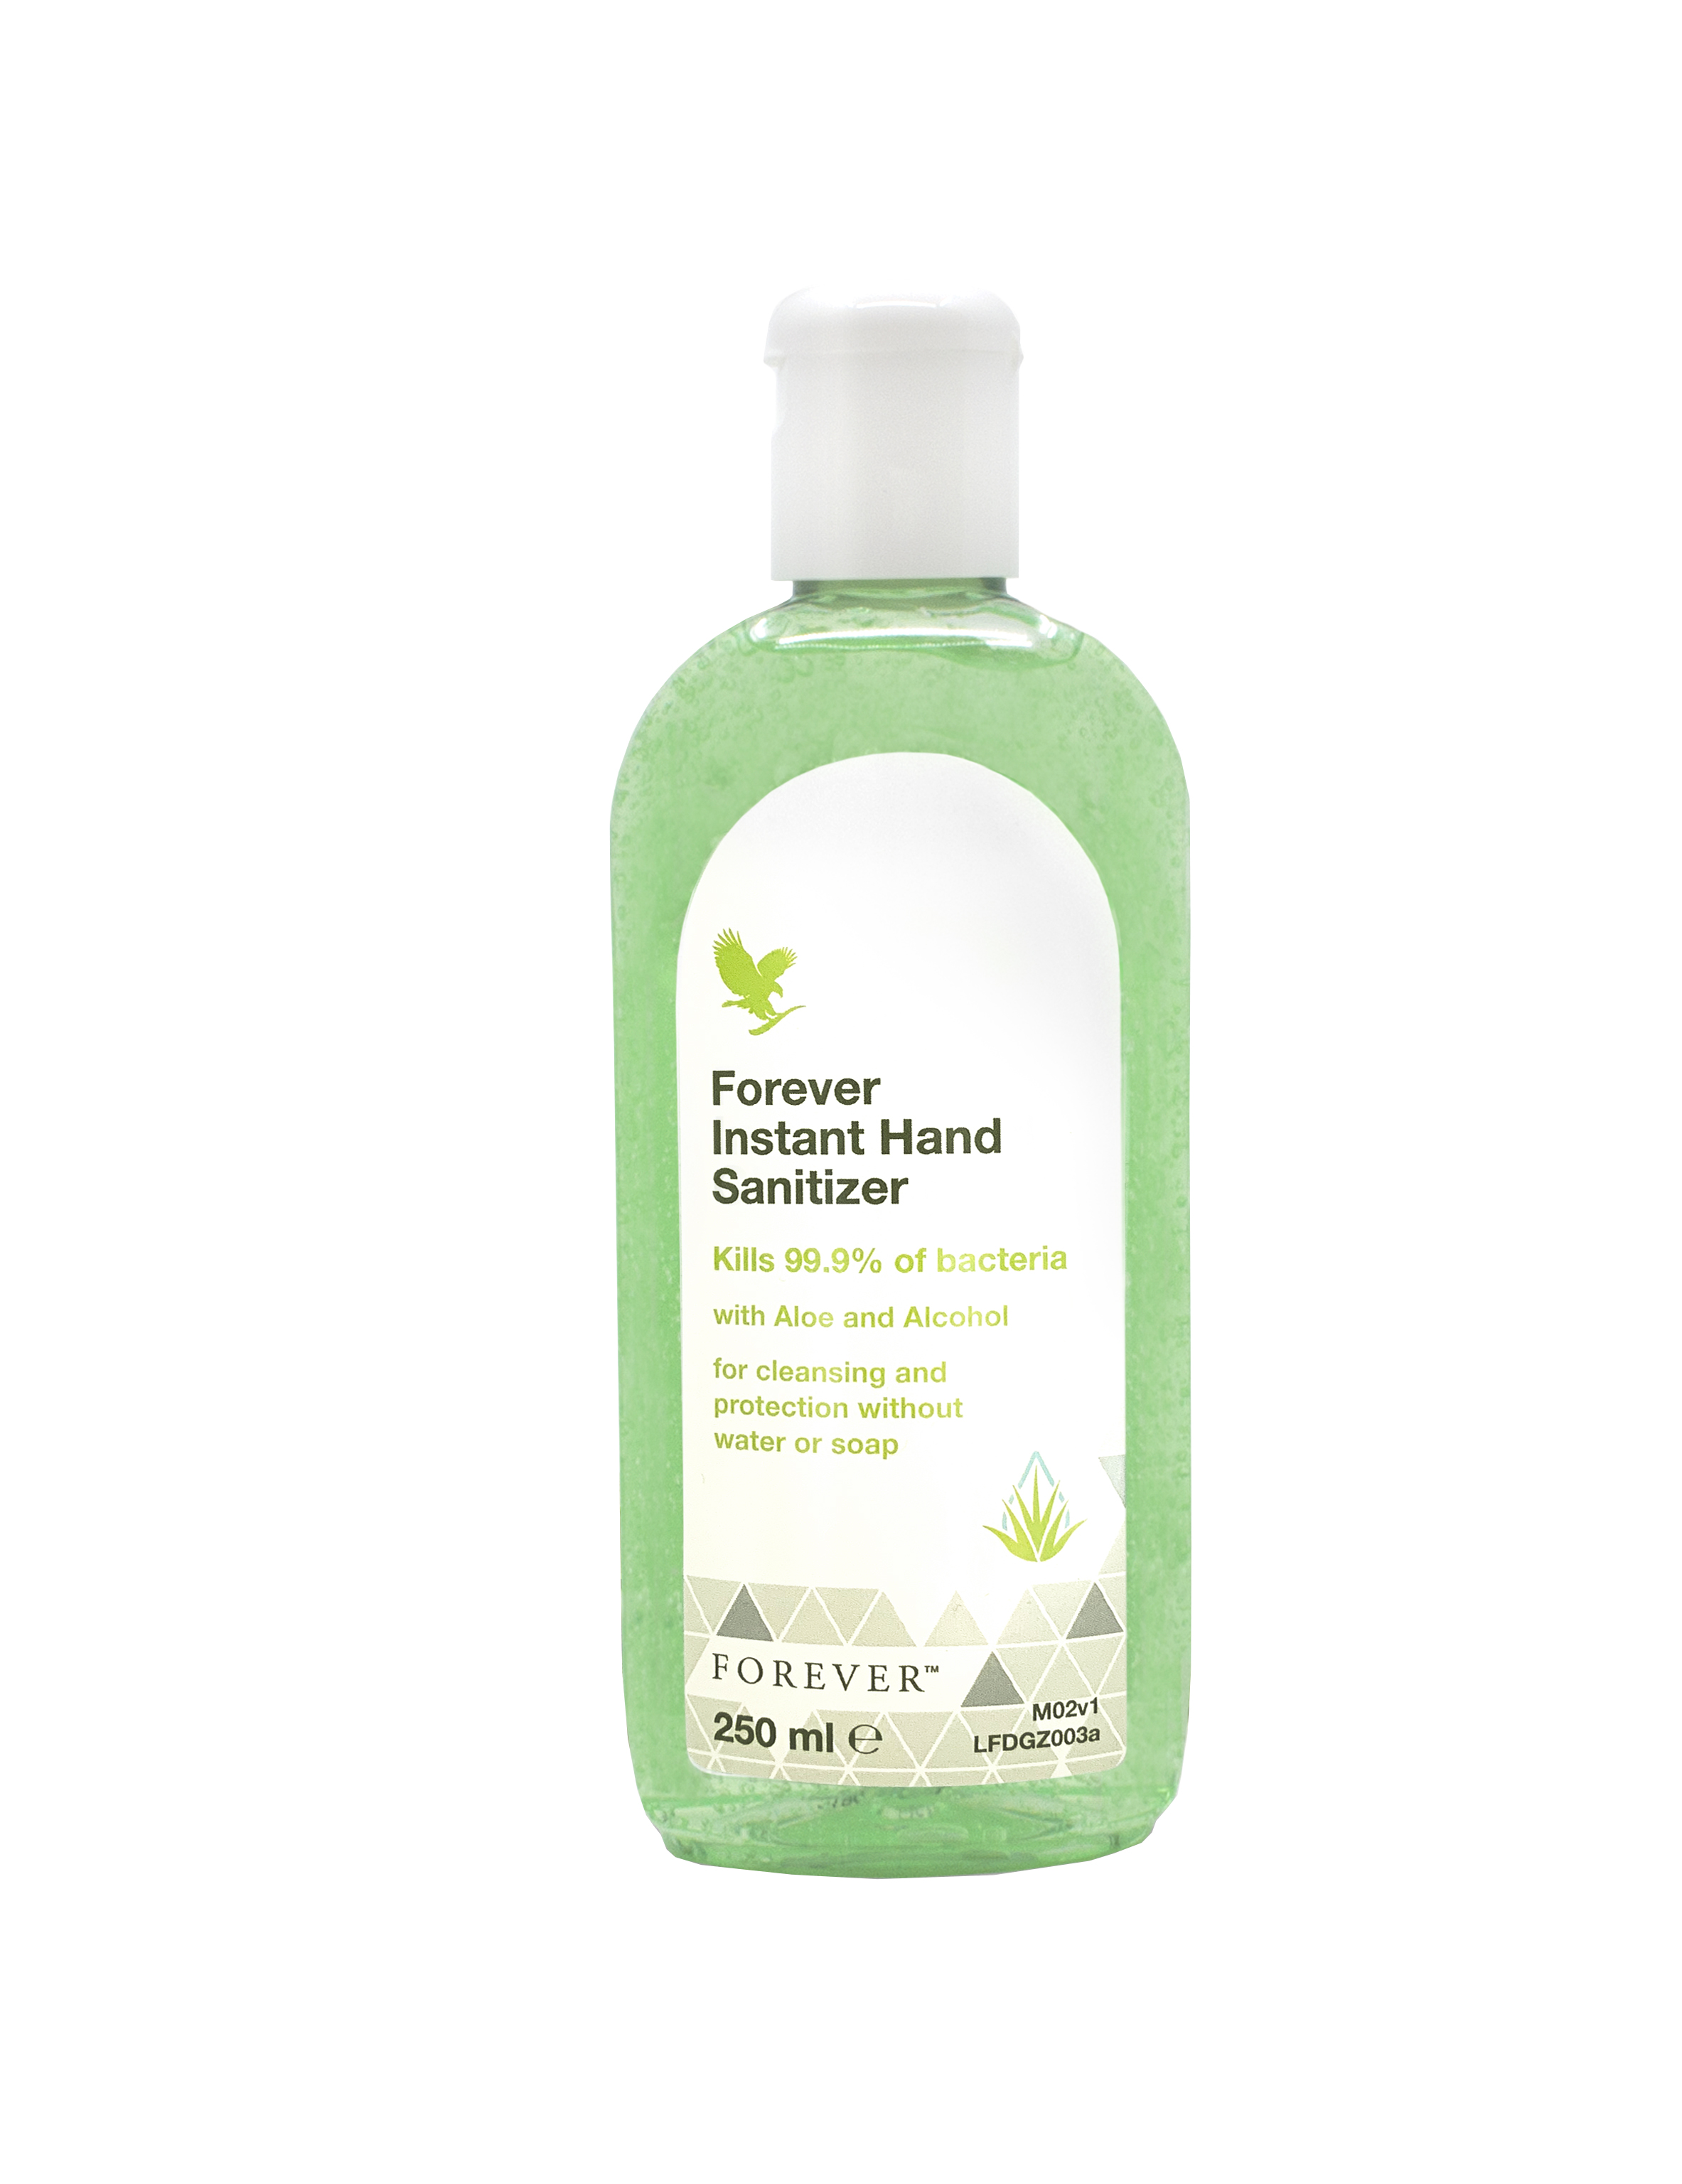 Forever Instant Hand Sanitizer&nbsp;encourages you to get the most out of your everyday life without compromising your well-being, and that of your loved ones. The effective aloe-based formula kills 99.9% of bacteria, and leaves your hands feeling clean and refreshed in an instant. The citrus-scented hand sanitizer is ideal for cleaning your hands quickly and effectively if soap and water are not available. Powerful and refreshing,&nbsp;Forever Instant Hand Sanitizer&nbsp;will keep the whole family protected, wherever the adventure leads. <ul><li>Essential to have at home and perfect when you are on the go.</li><li>Kills 99.9% of bacteria</li><li>Formulated with 70% alcohol</li><li>Quick-drying and non-sticky</li><li>Effective aloe-based cleansing formula</li></ul> Powerful and refreshing,&nbsp;<b>Forever Instant Hand Sanitizer</b>&nbsp;will keep the whole family protected, wherever the adventure leads. The citrus-scented, aloe-based hand sanitizer kills 99.9% of bacteria, and is ideal for cleaning your hands quickly and effectively if soap and water are not available.